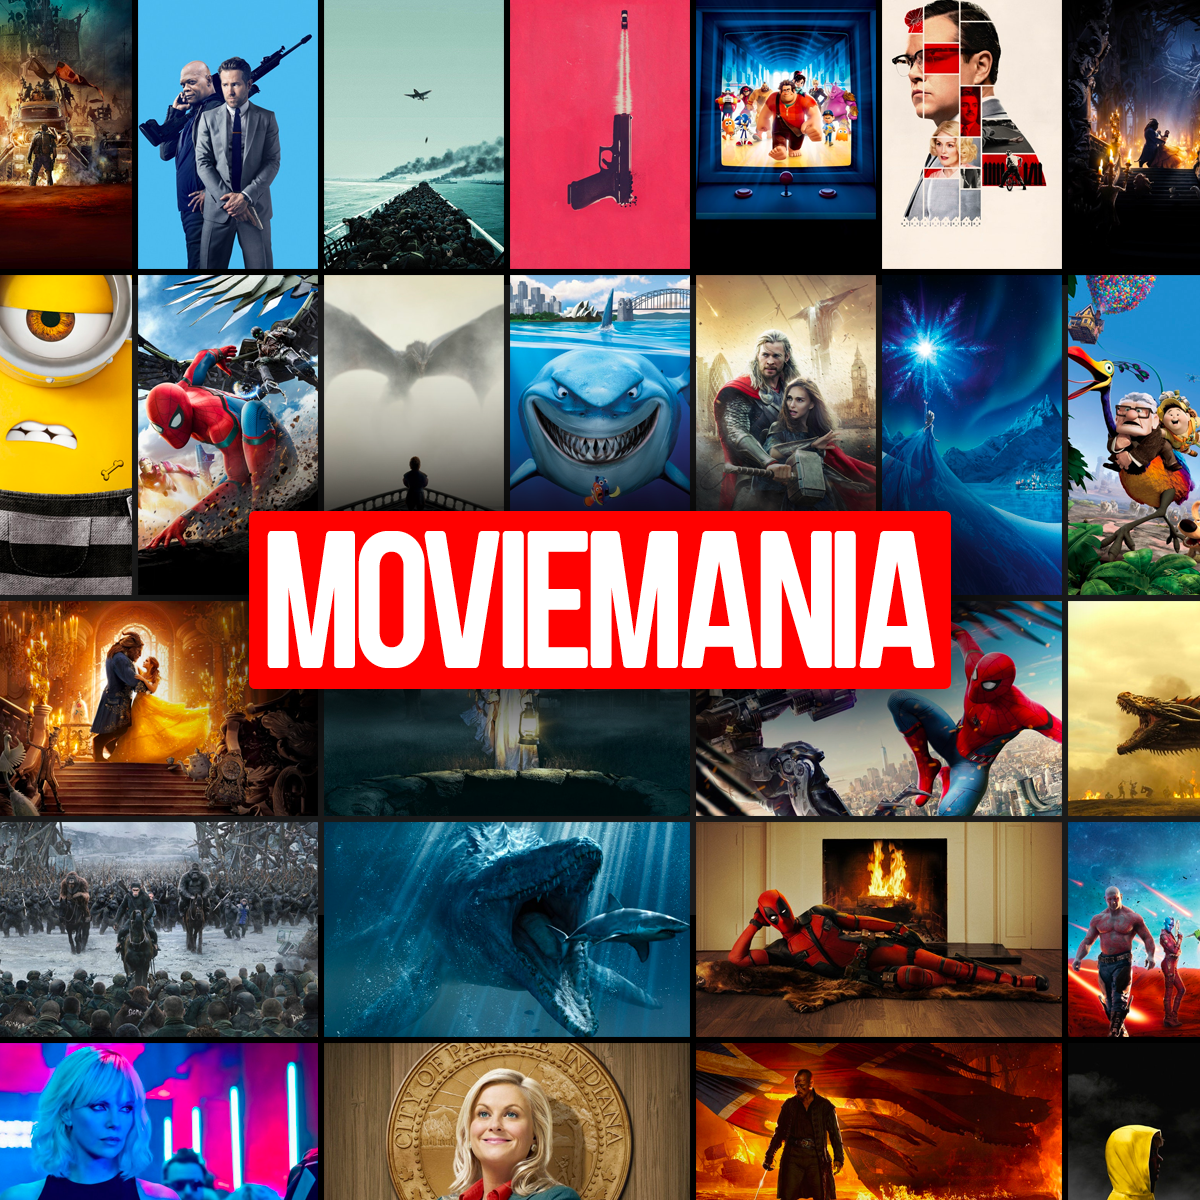 Moviemania The Largest Textless Highresolution Movie Wallpapers Database On The Internet W 12 000 Wallpapers Https Www Moviemania Io Utm Content Buffe